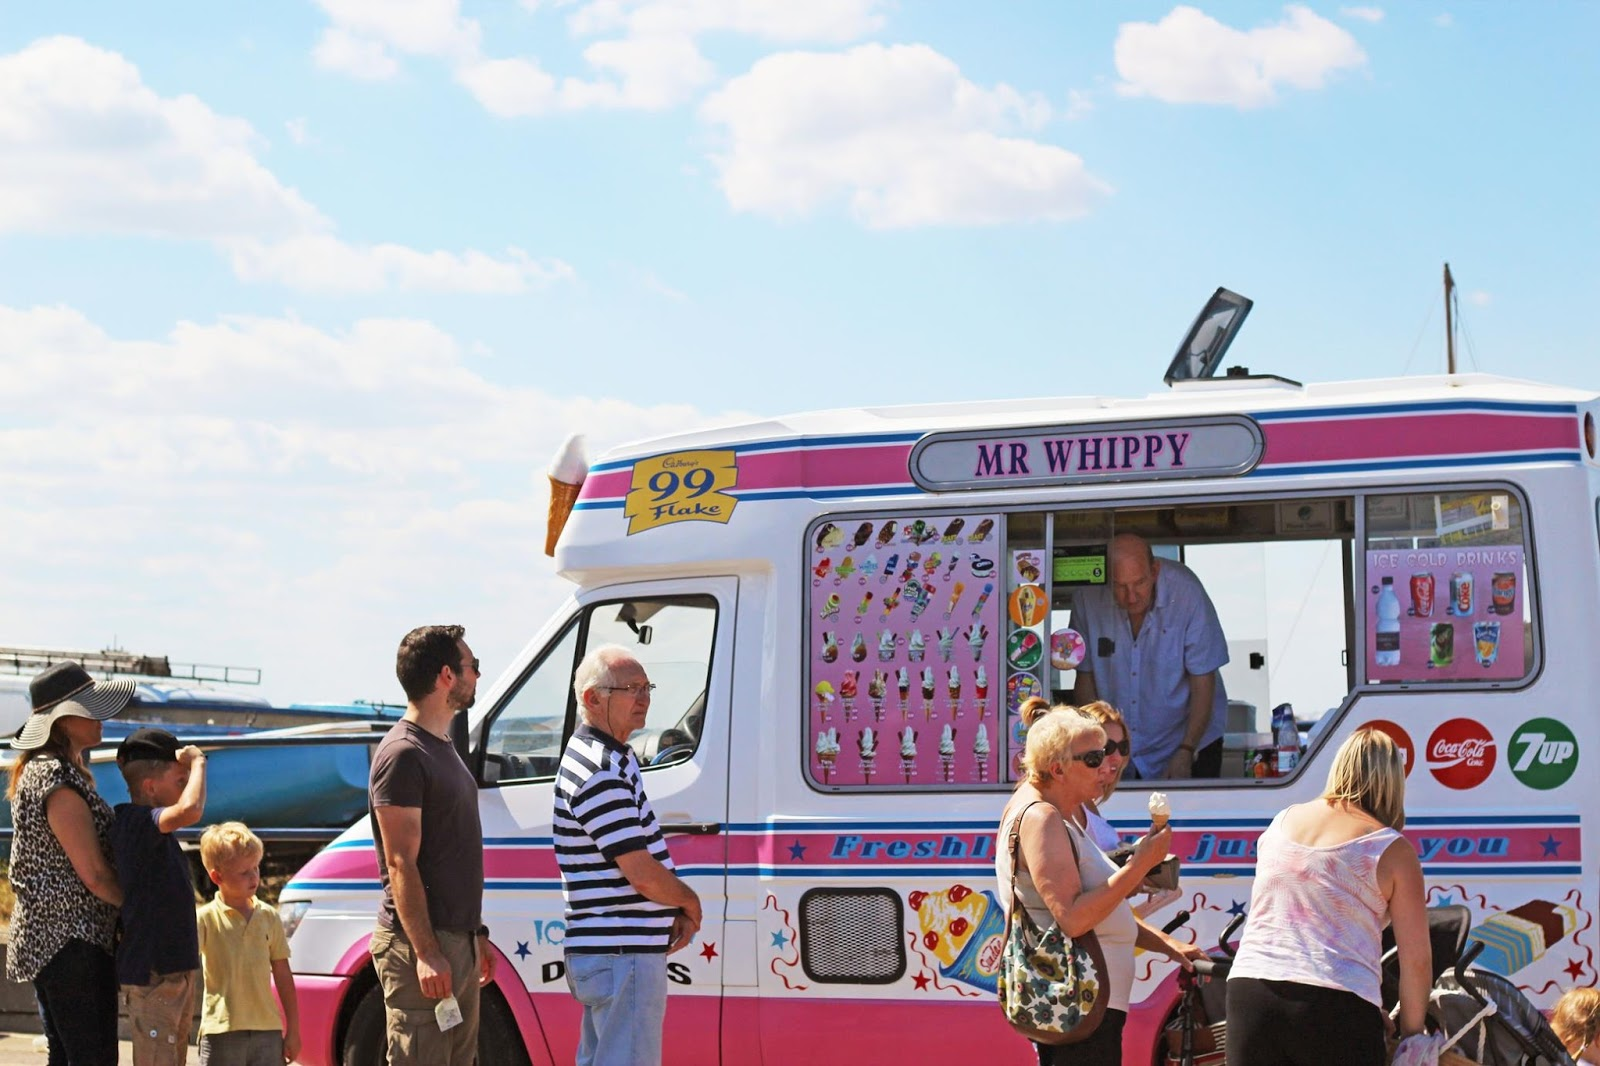 whitstable, whitstable uk, whitstable beach, visit whitstable, whitstable ice creams